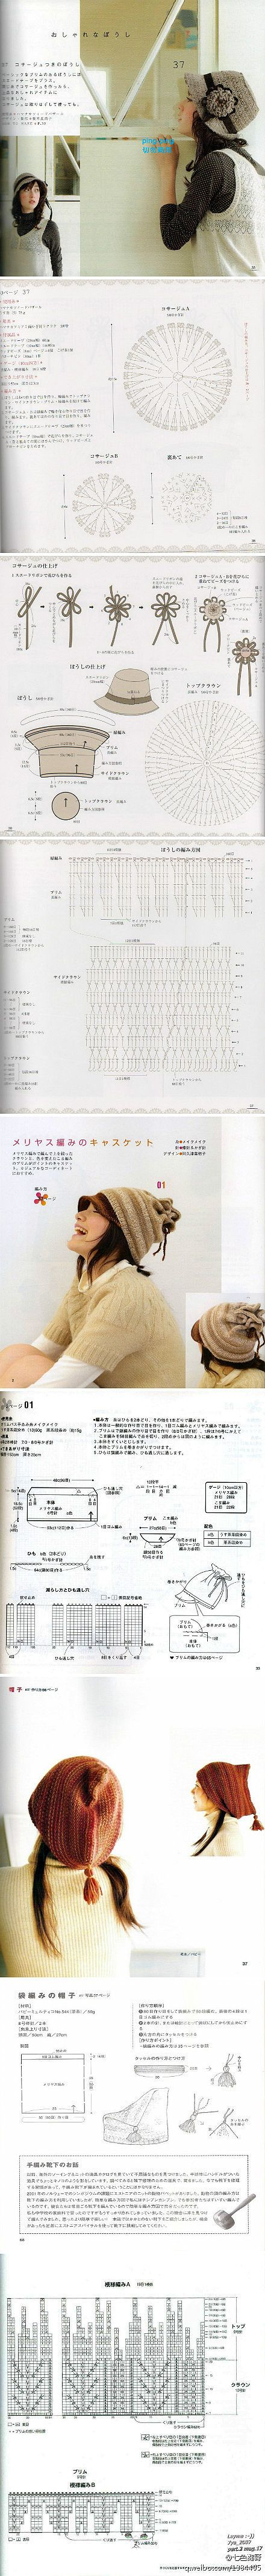 CHAPÉU DE CROCHÊ: Hat Crochet Patterns, Hats Crochet Patterns